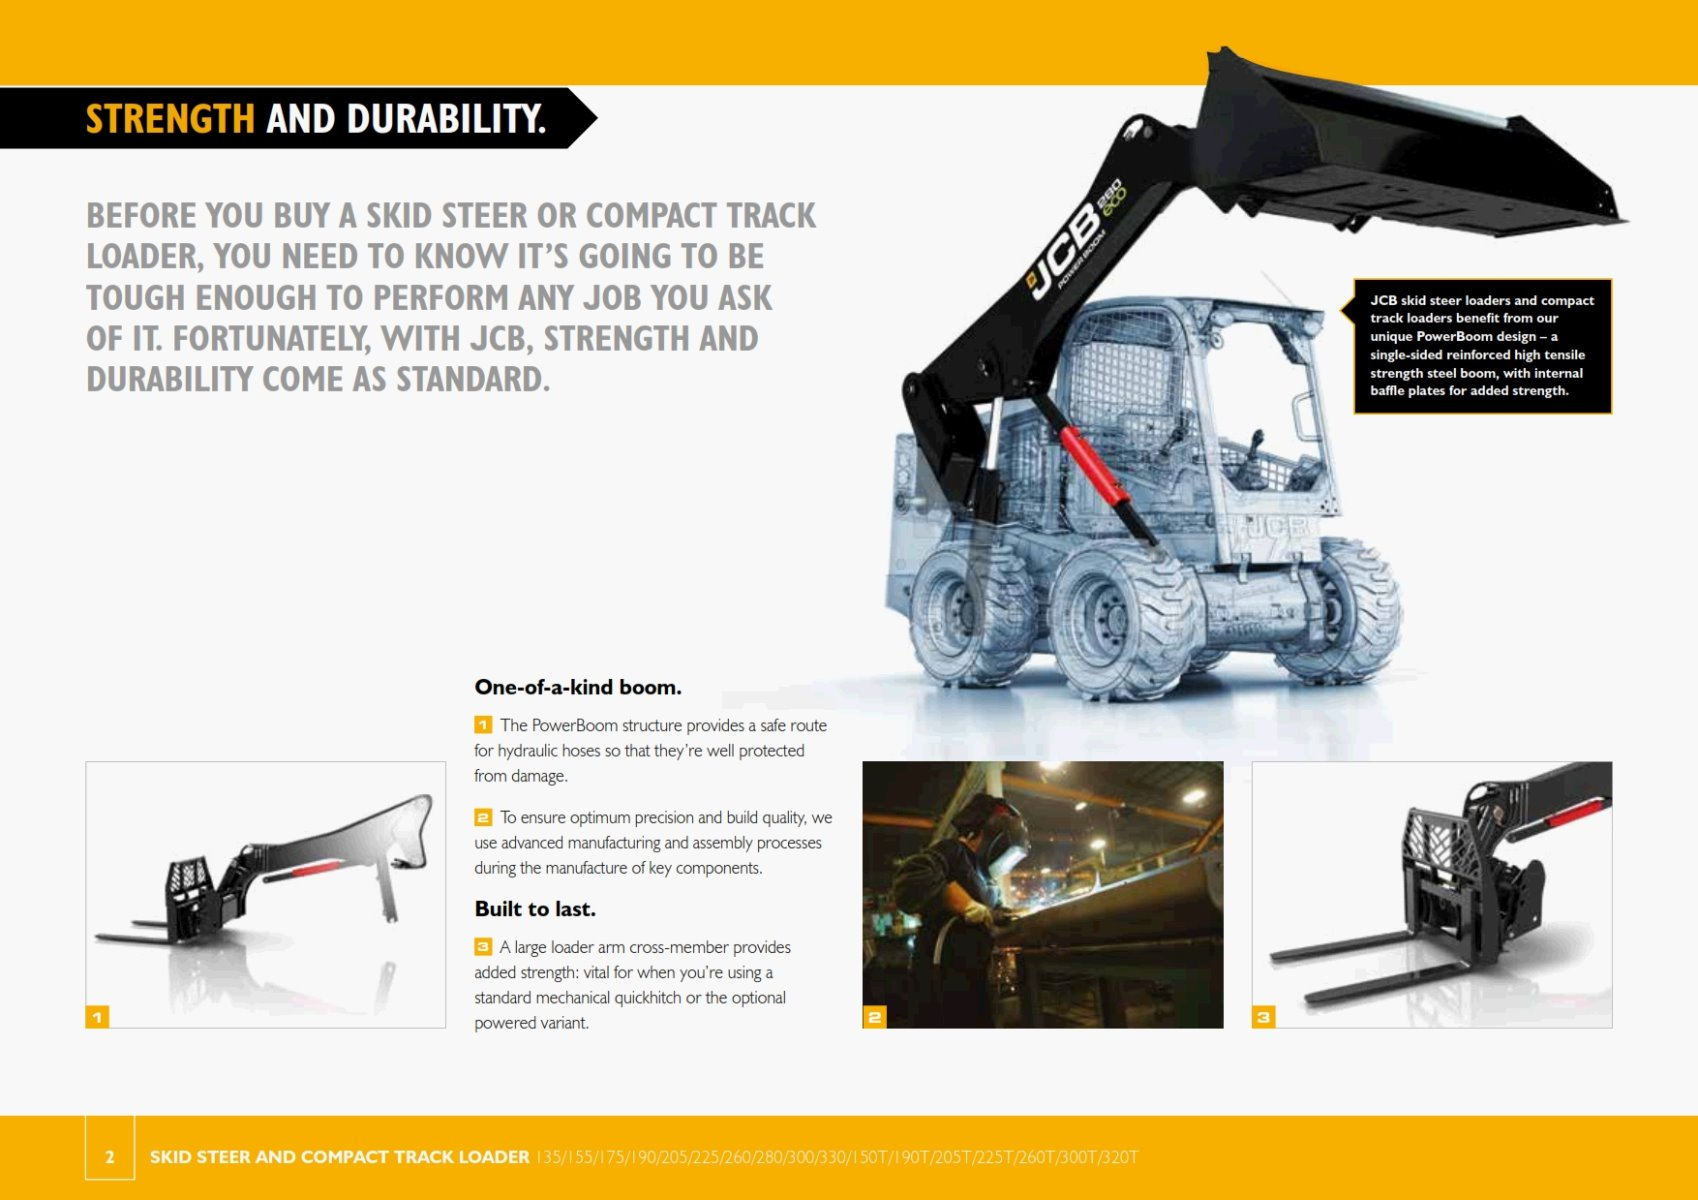 SKID STEER JCB 205T FEATURES